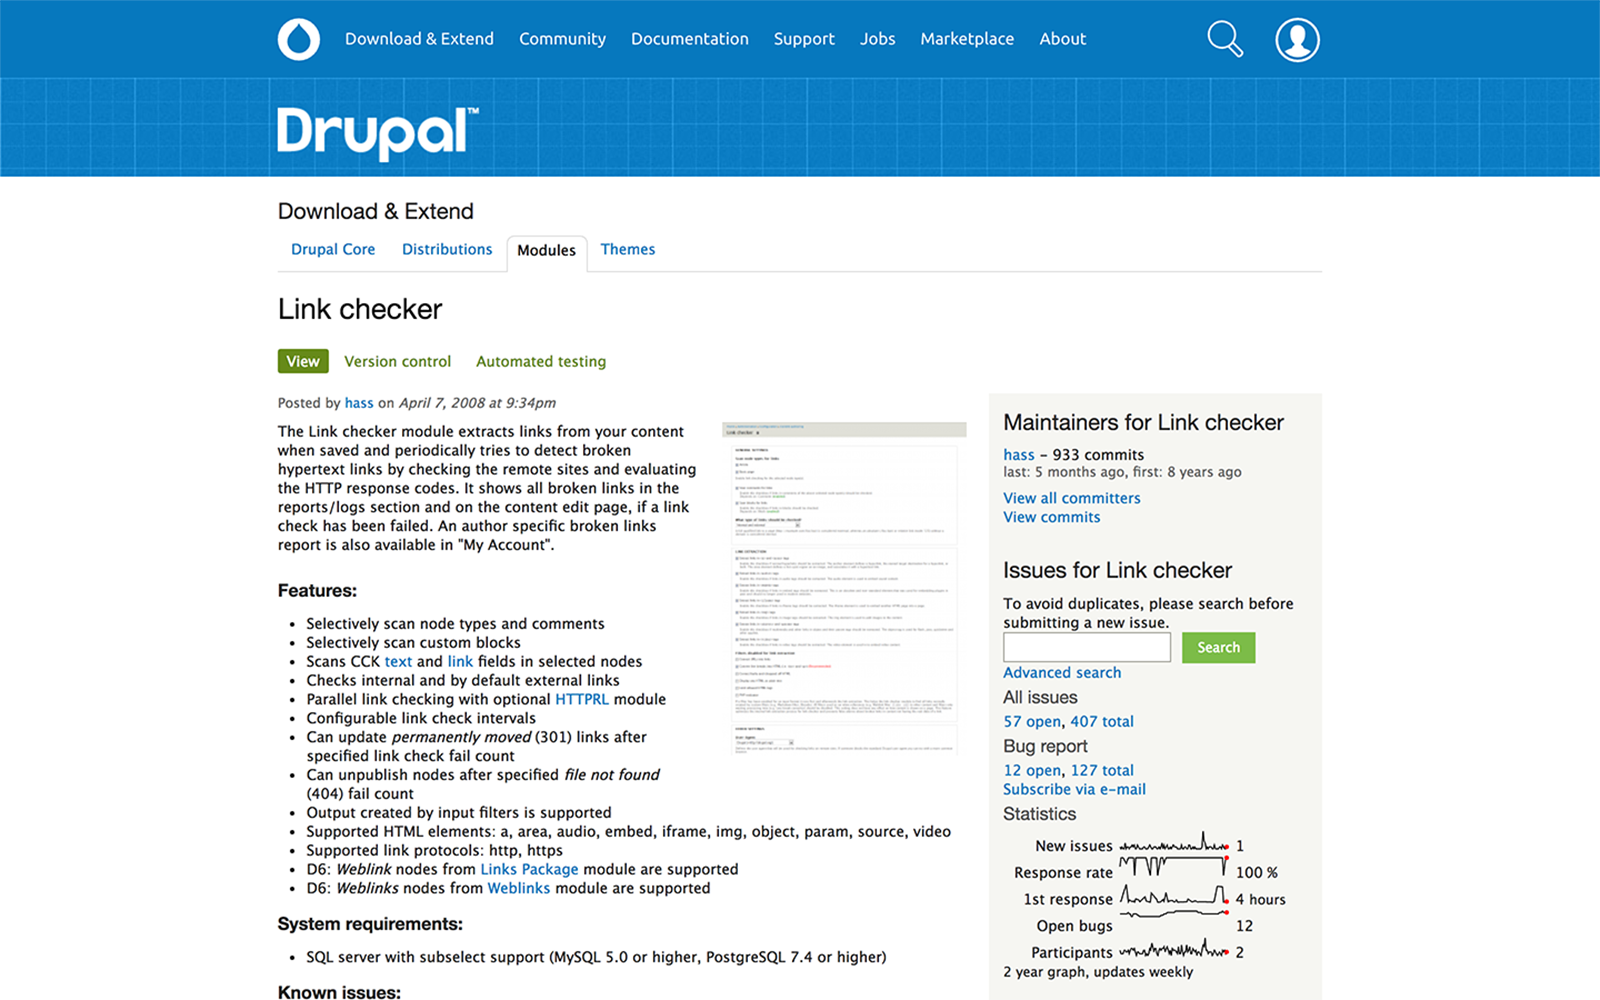 Drupal link checker module screenshot.